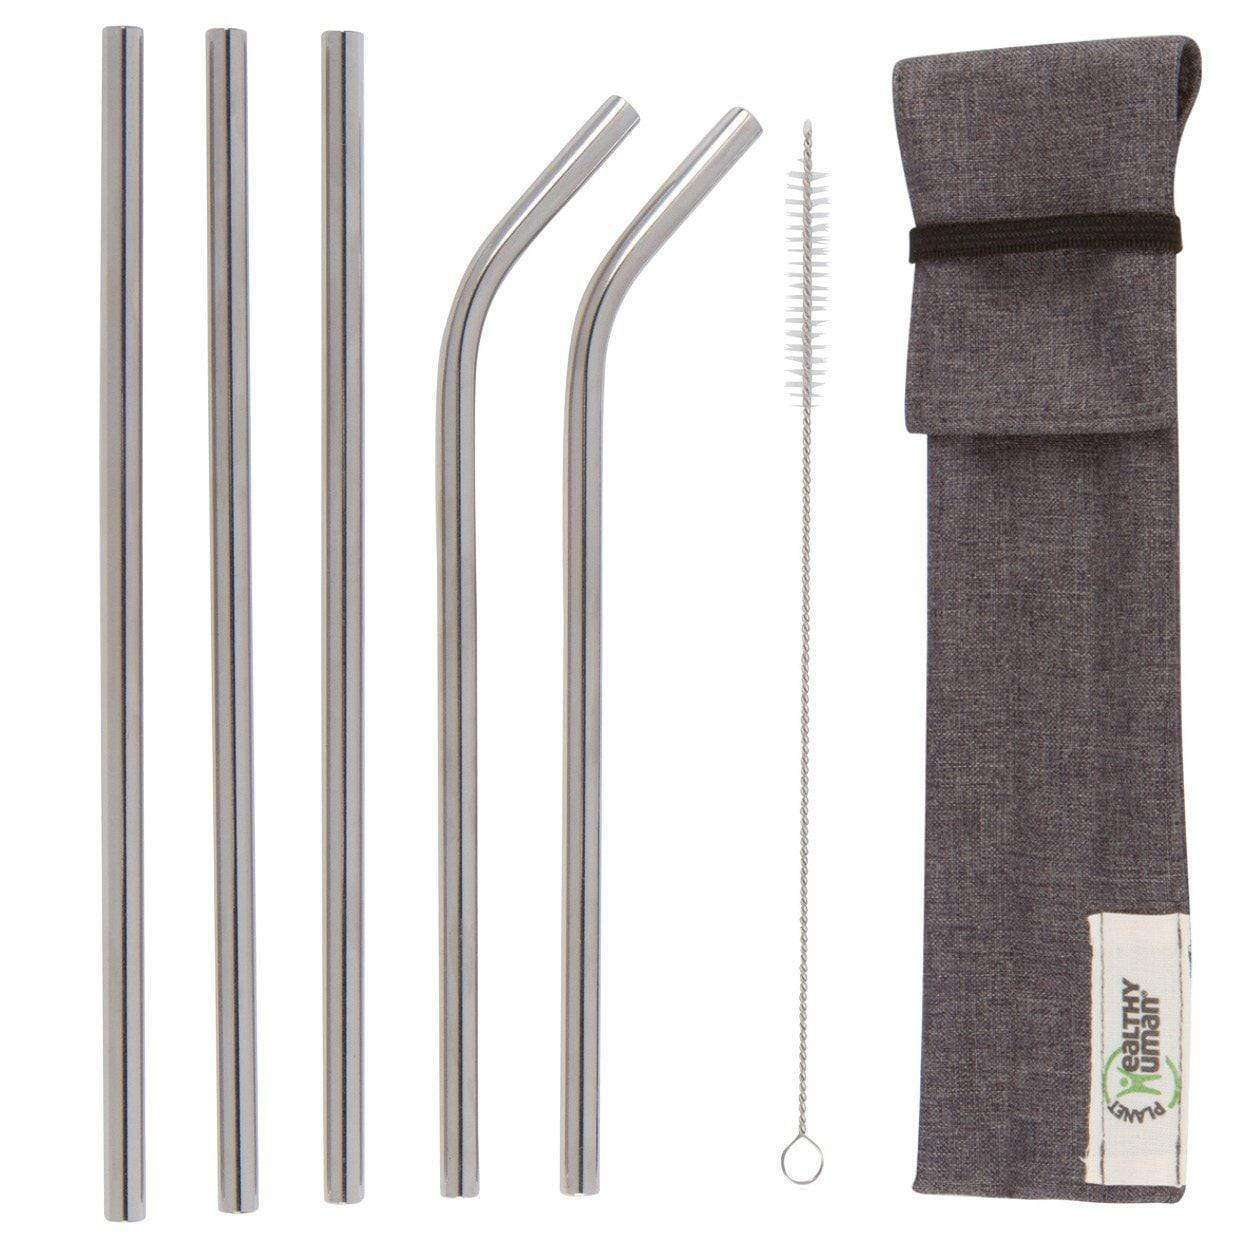 5-Pack Complete Stainless Steel Straw Kit by Healthy Human